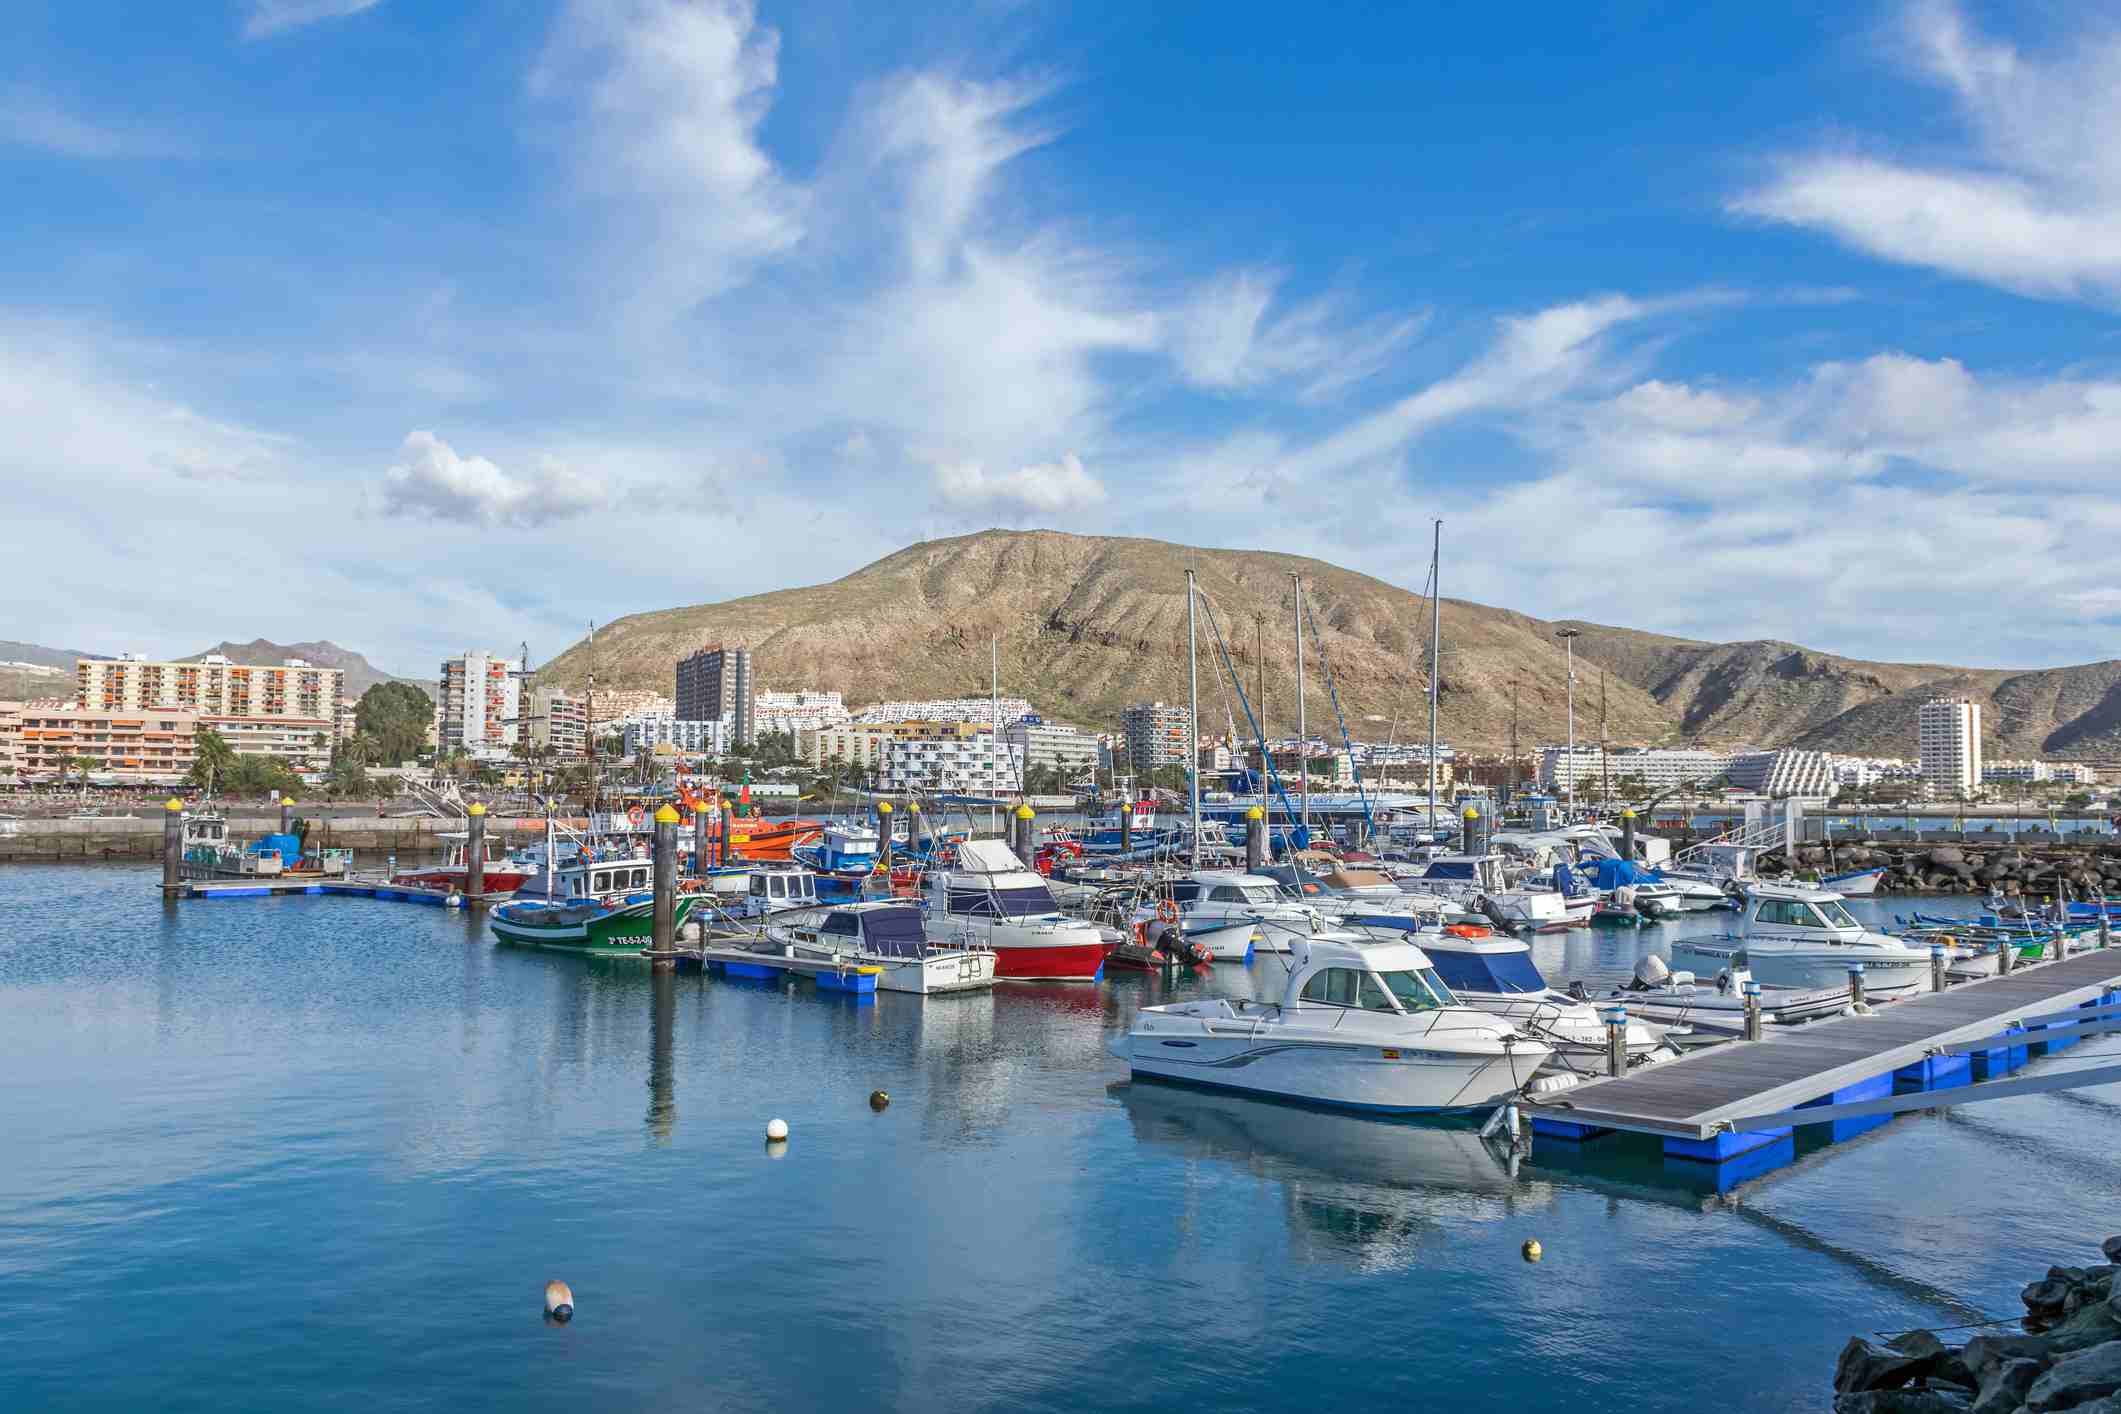 Boats in the harbour at Los Cristianos in Tenerife